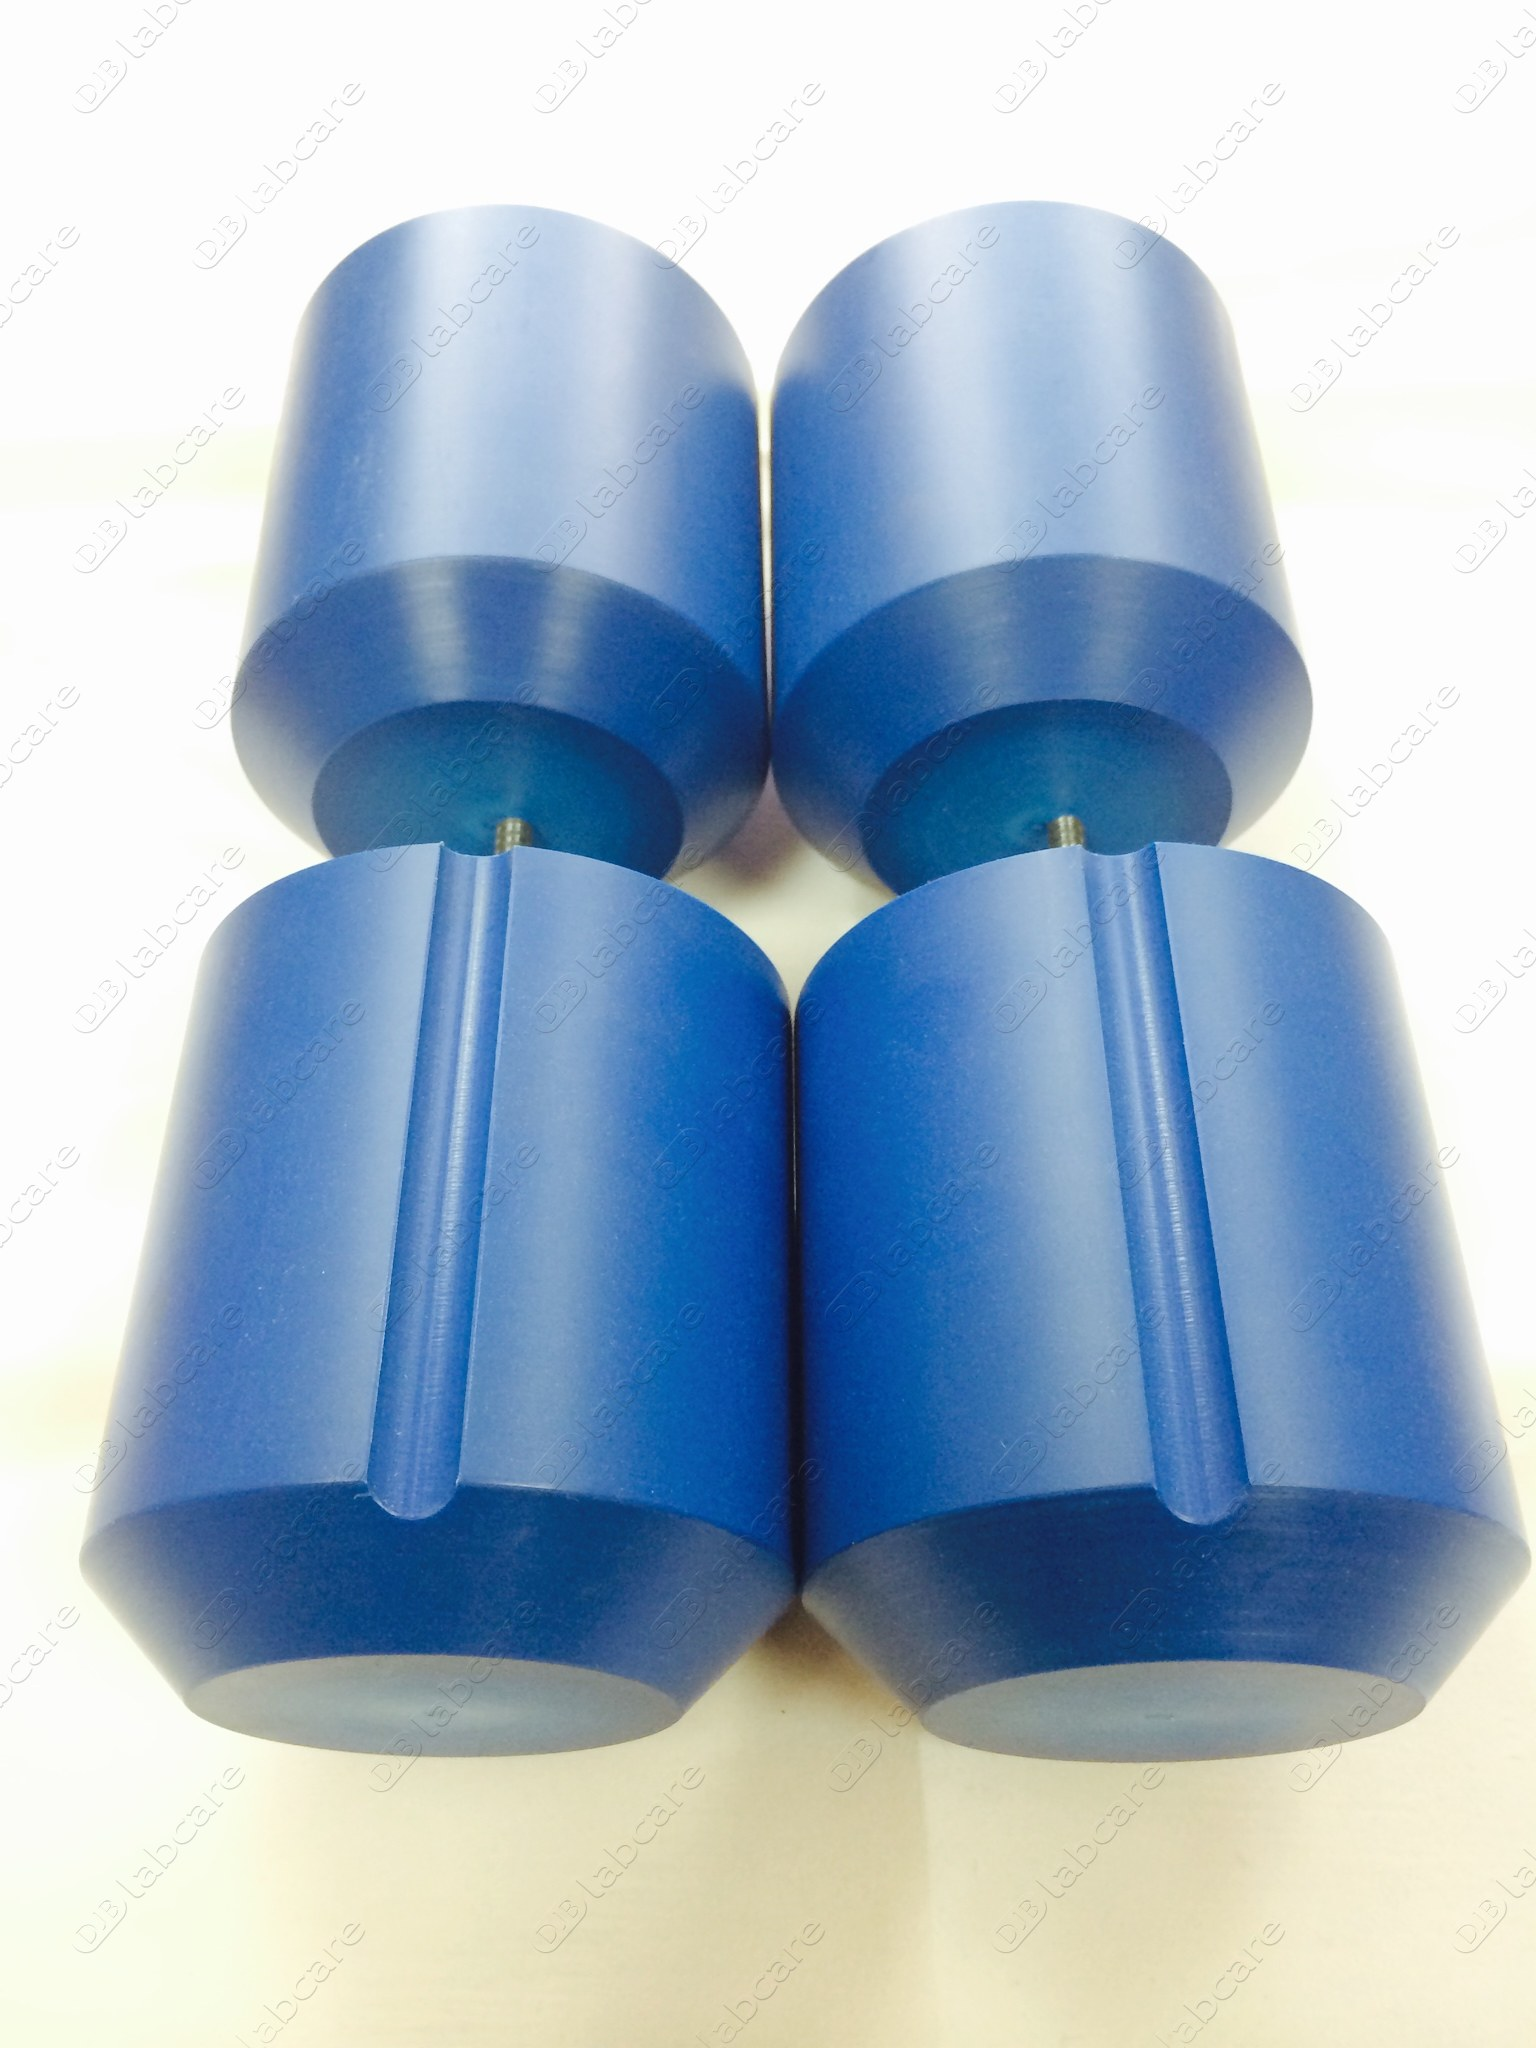 Djb5740 Adapters For 7 X 3 5ml Blood Tubes Set Of 4